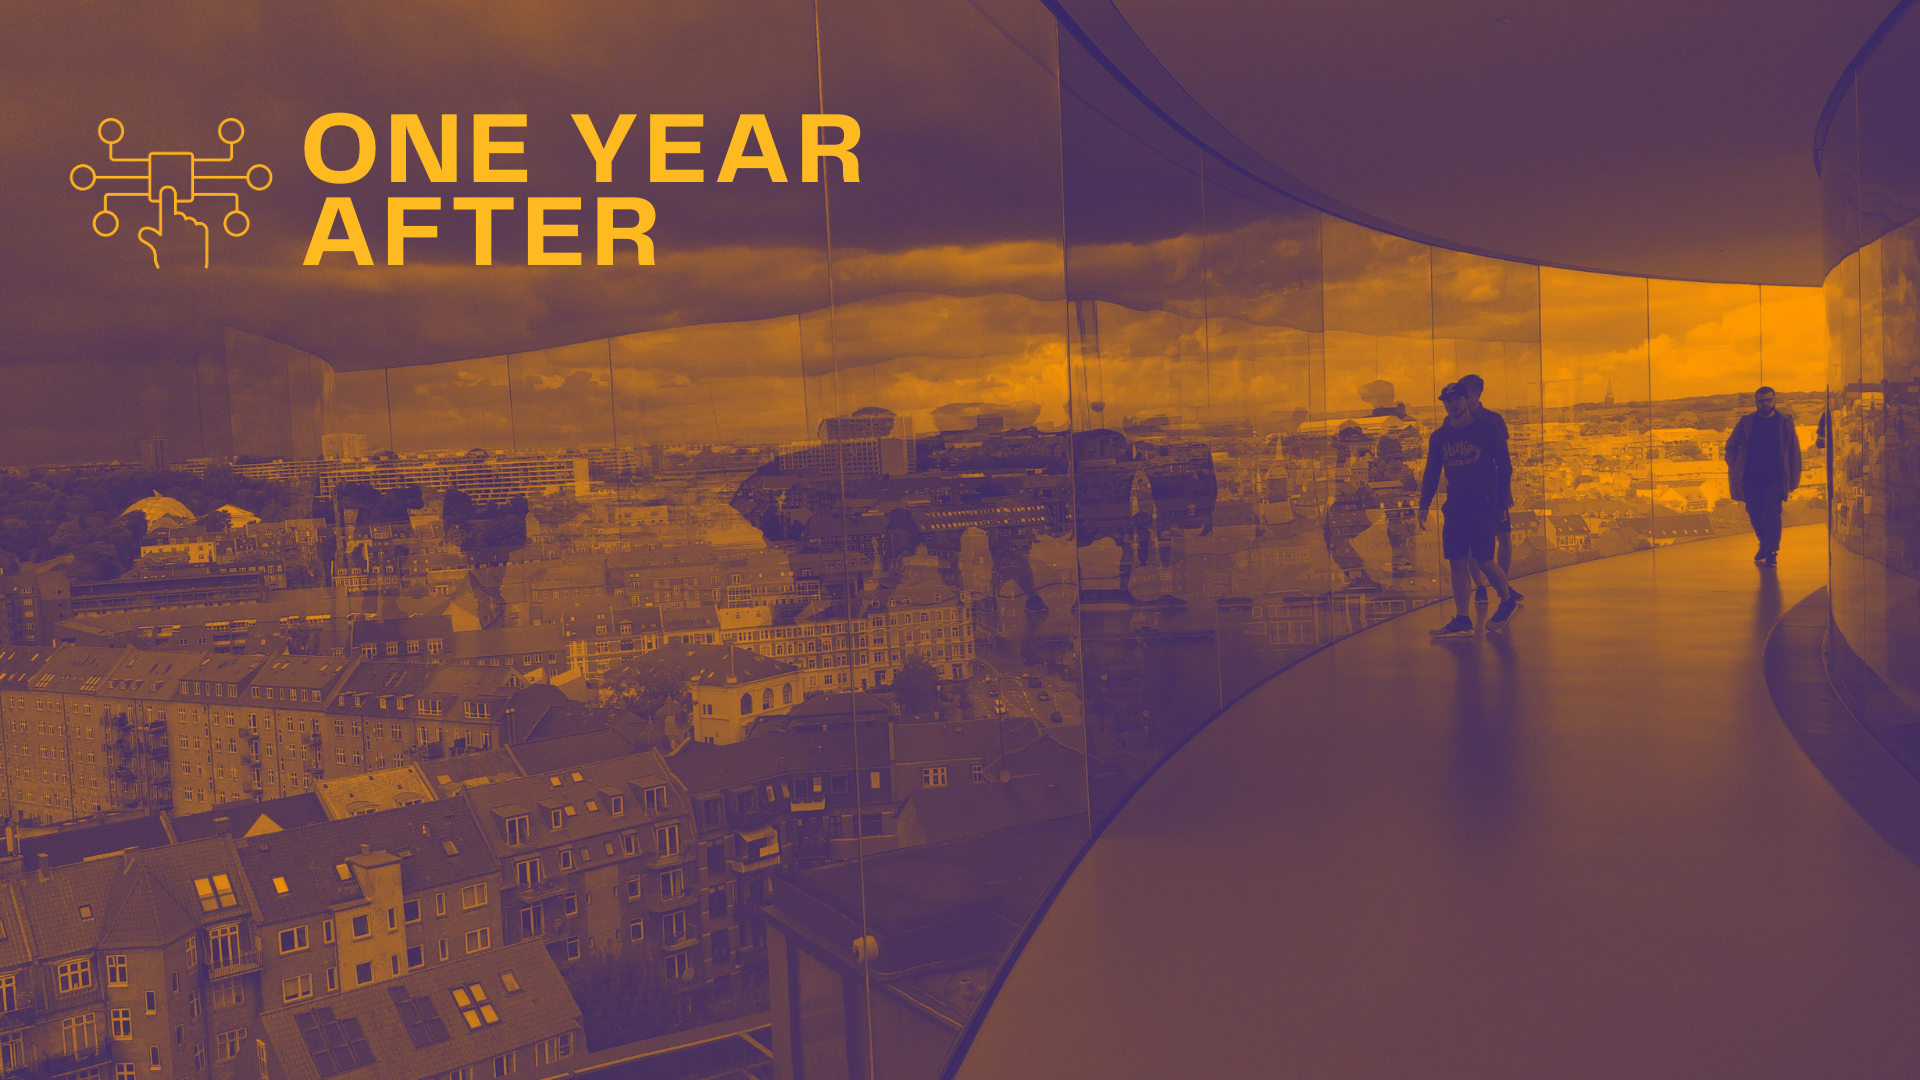 A year of hyper-accelerated digital transformation: what our cities and societies have learned